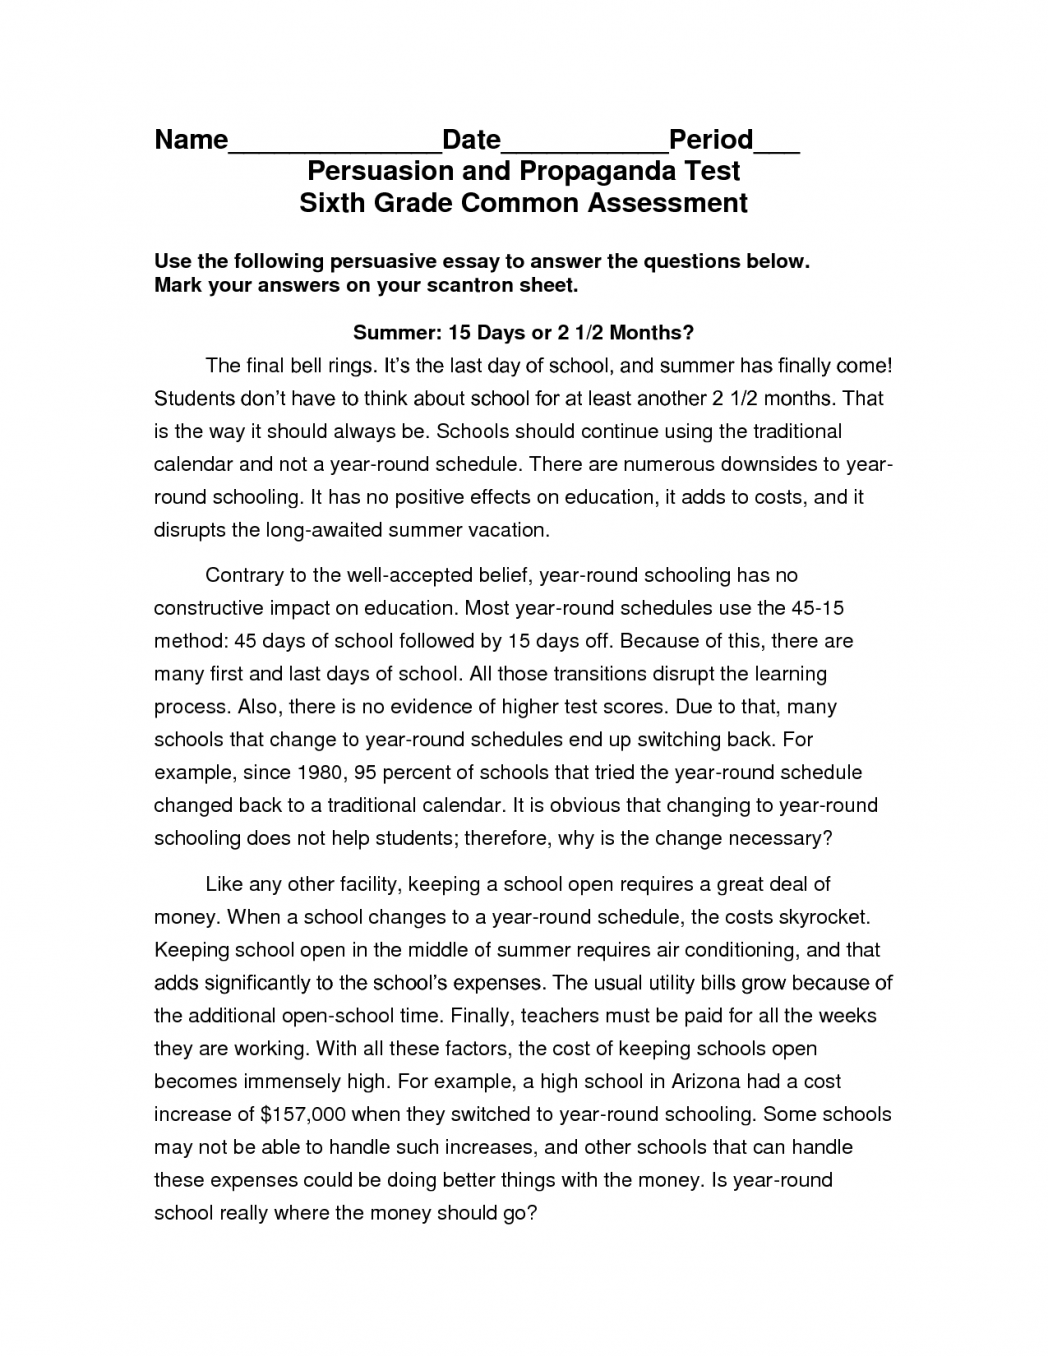 002 Essay Example 6th Grade Argumentative Examples Claim Writing Topics For School Students Counter Argument Persuasive 5 Good Shocking Full